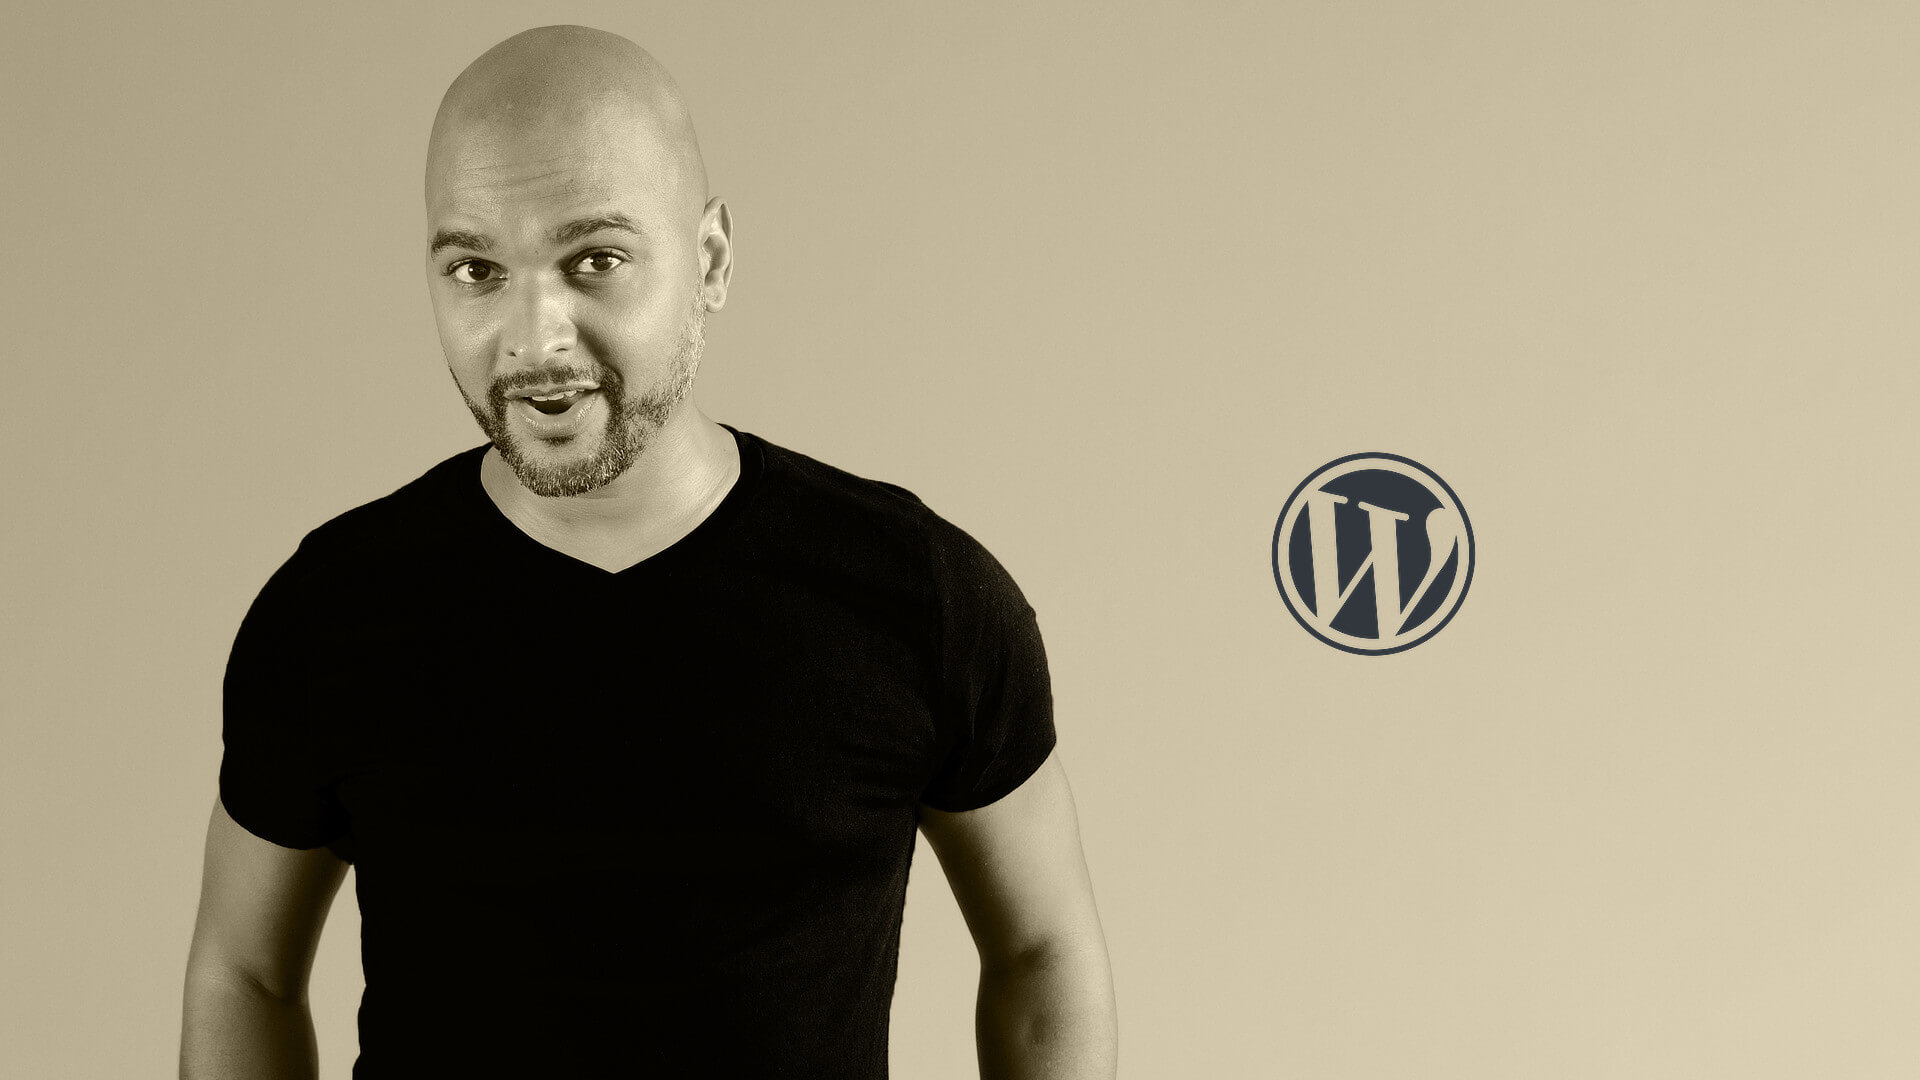 Selling Digital Products On WordPress: What Will You Create?